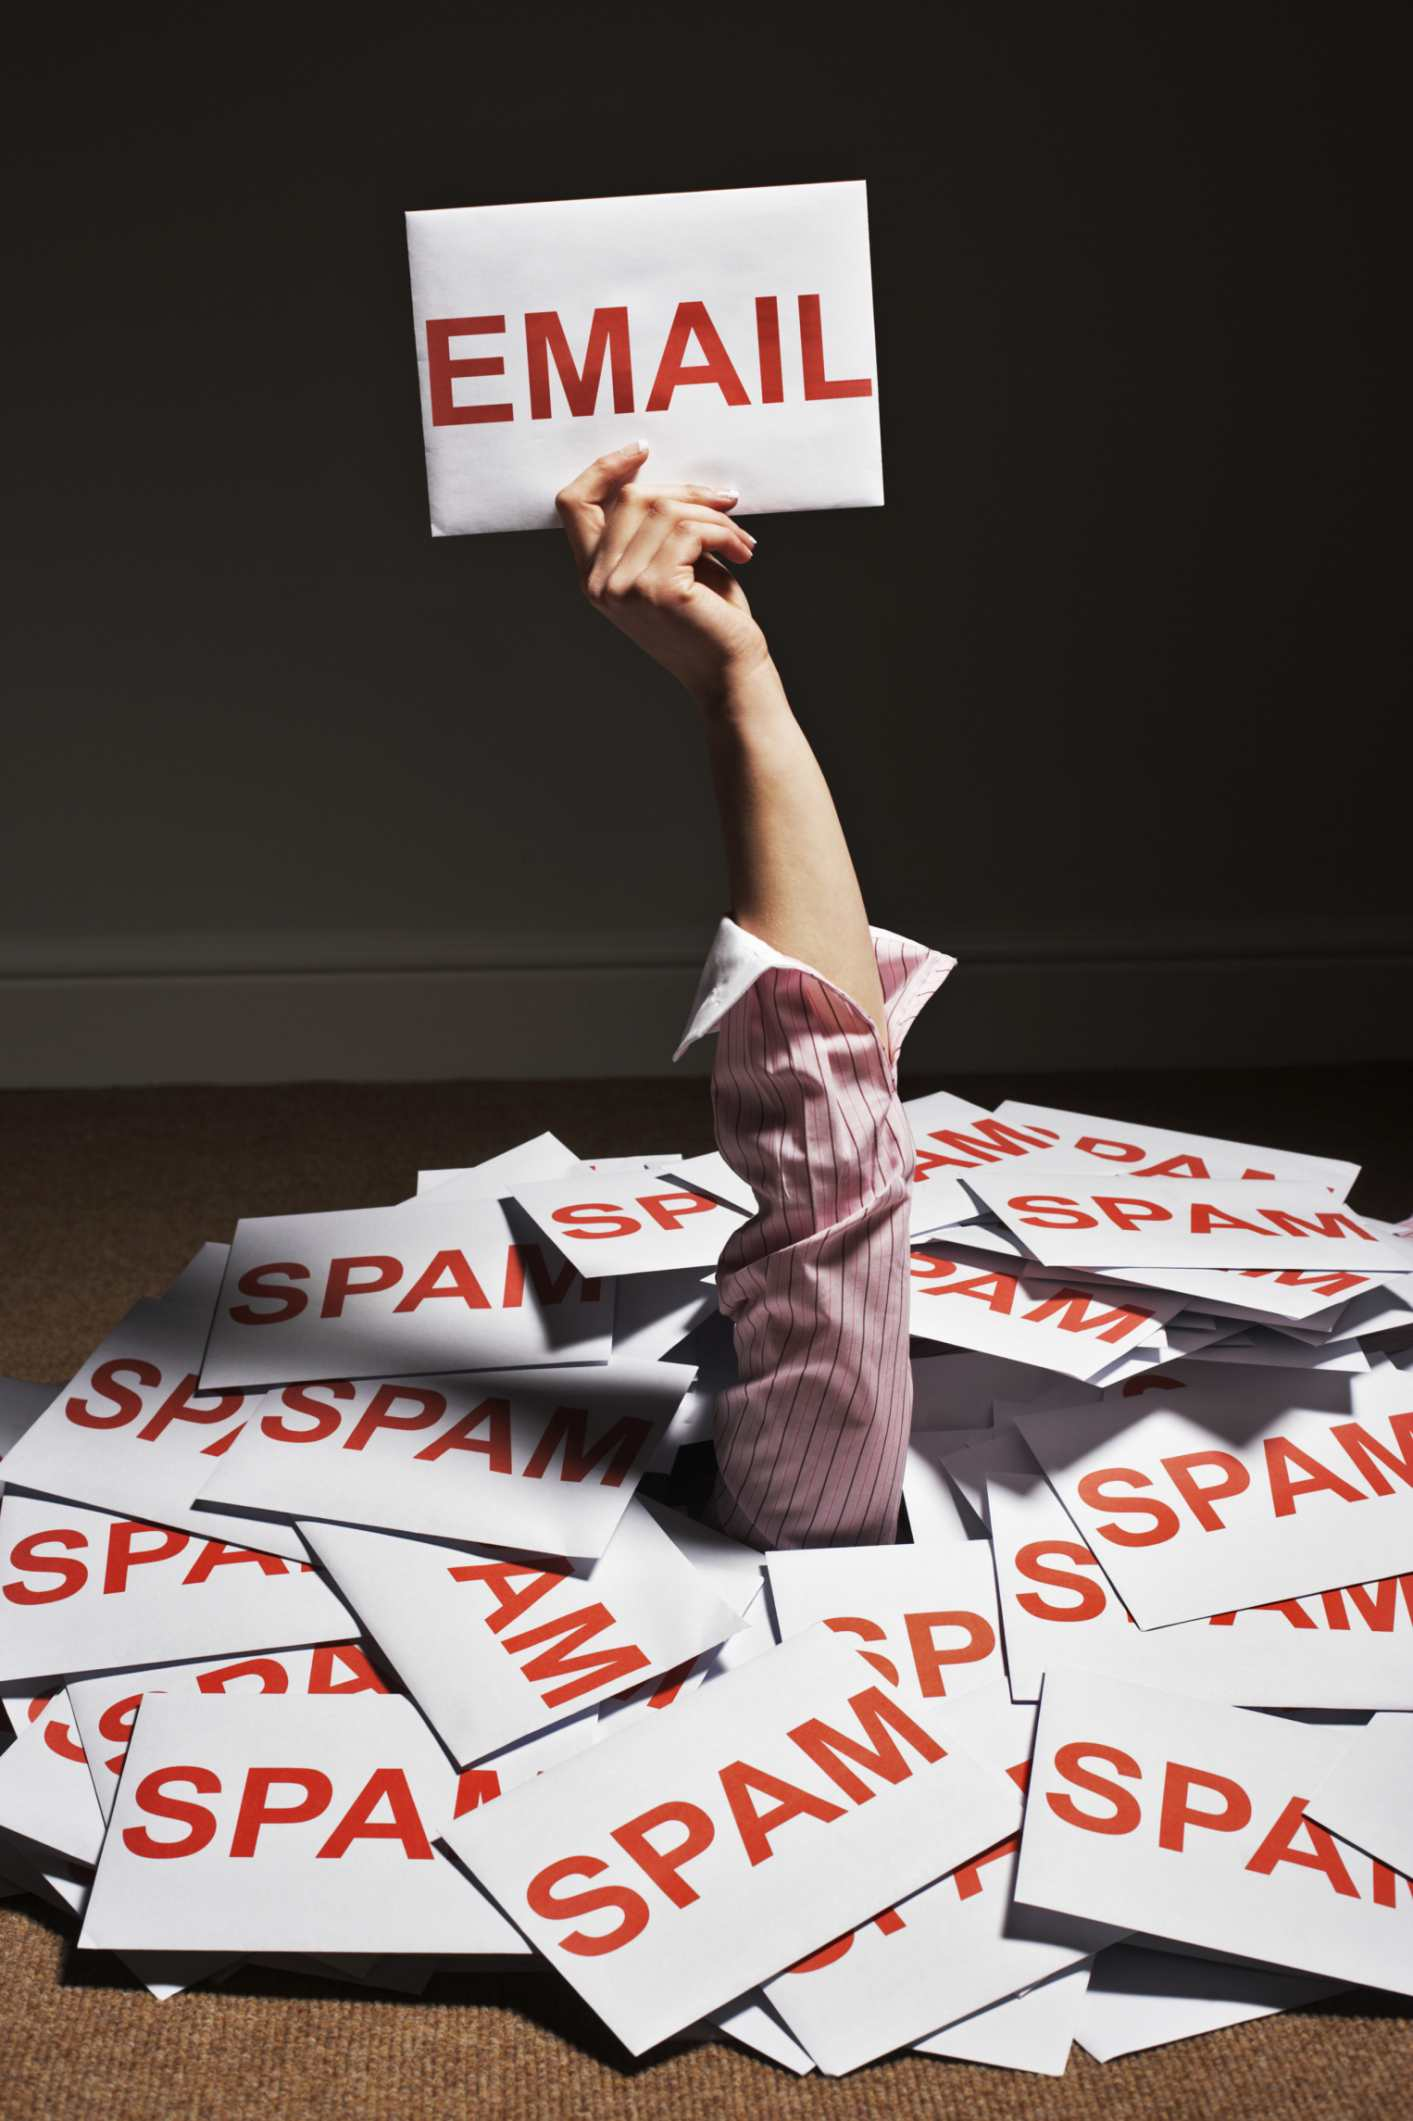 Image of a hand holding an email from a pile of spam.